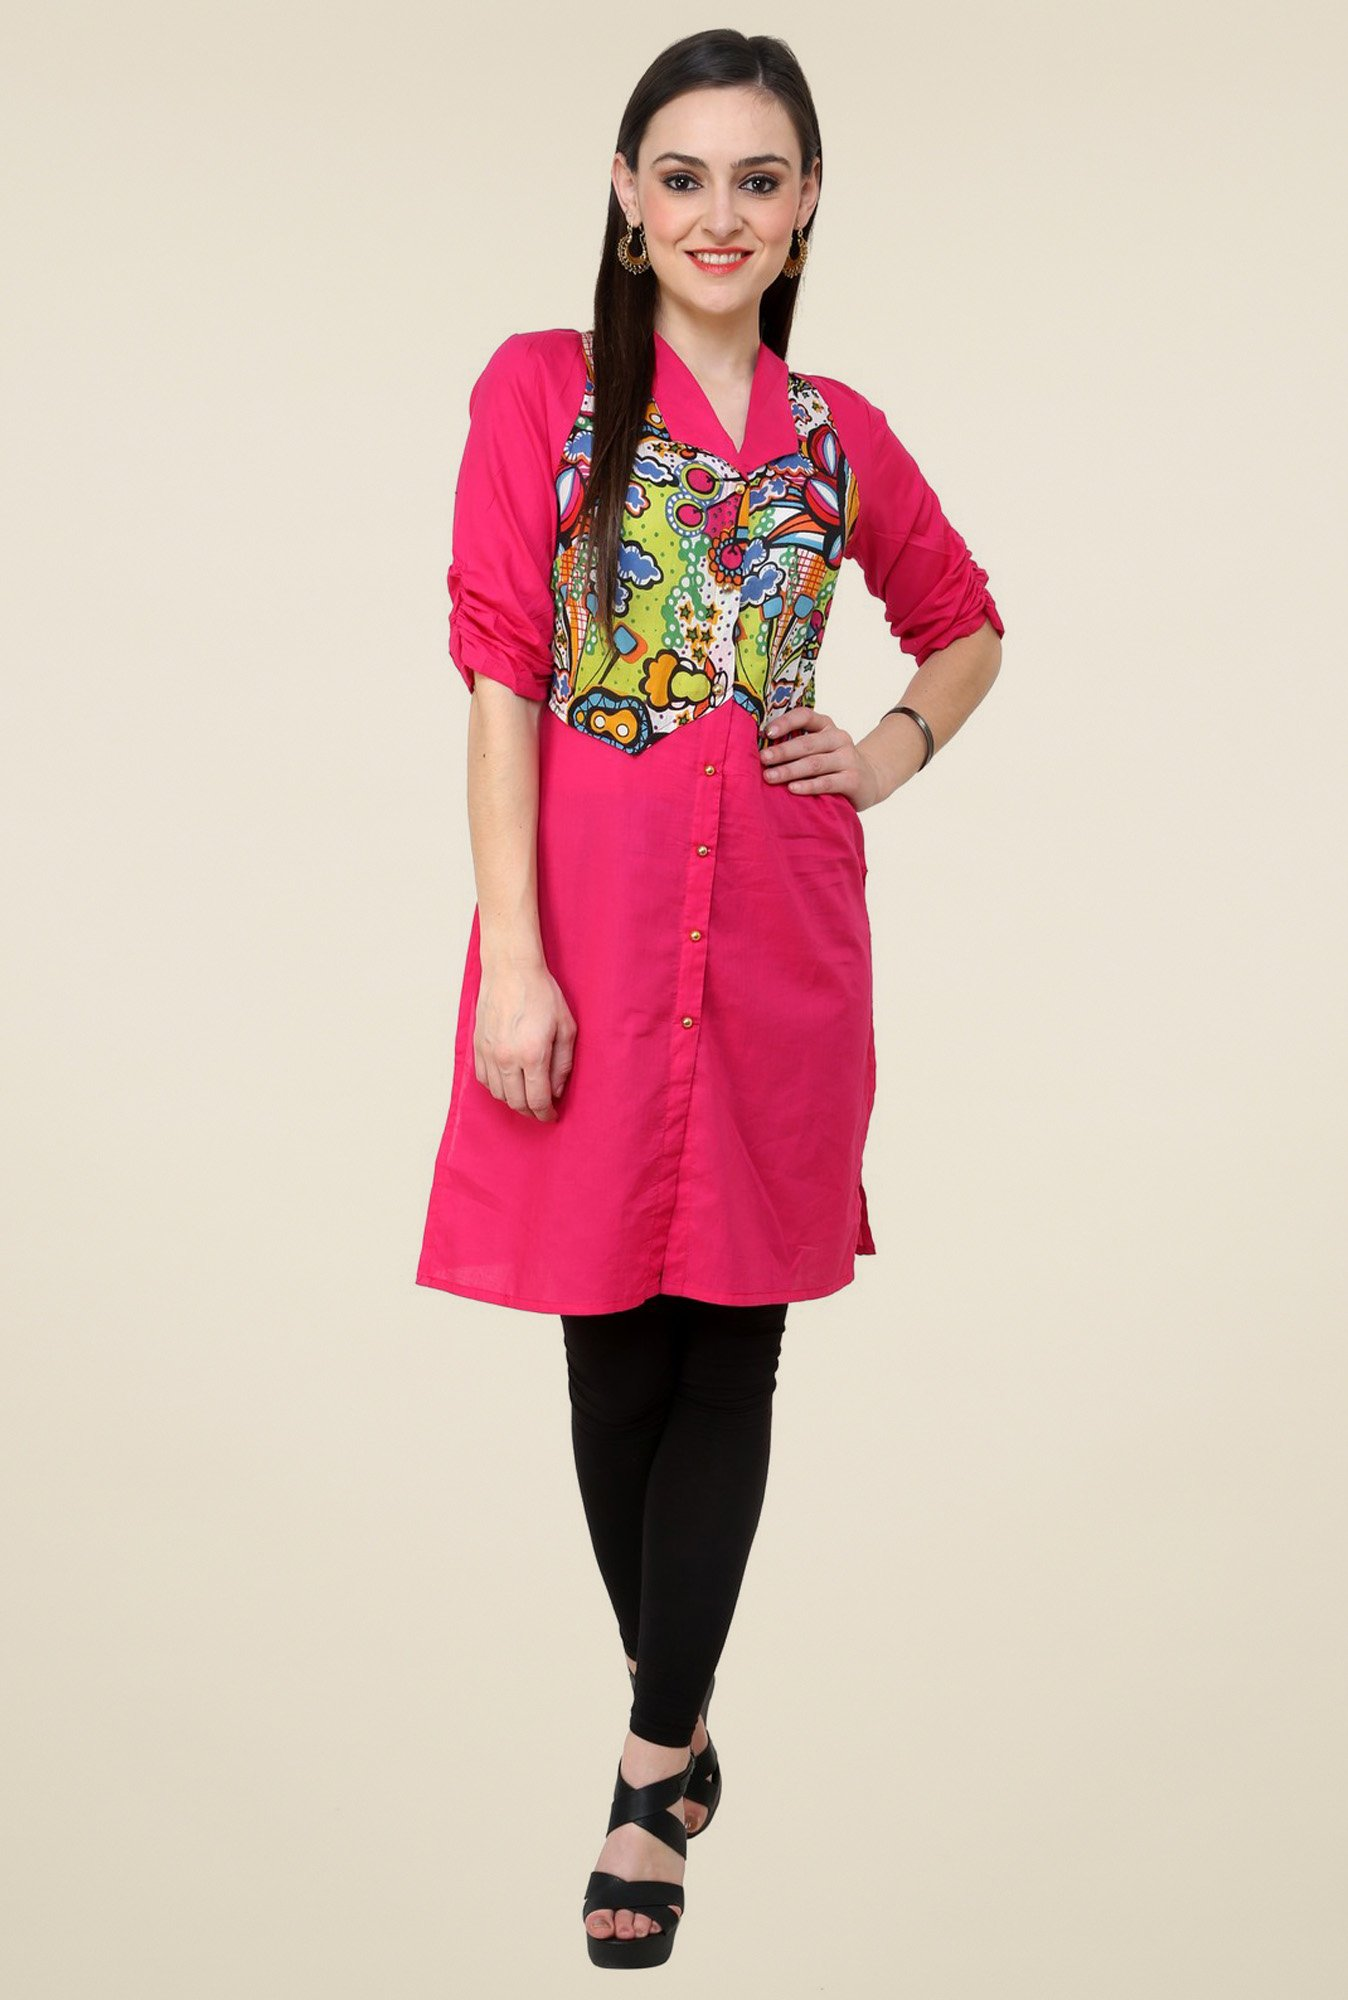 Pannkh Pink Elbow Sleeves Regular Fit Kurti